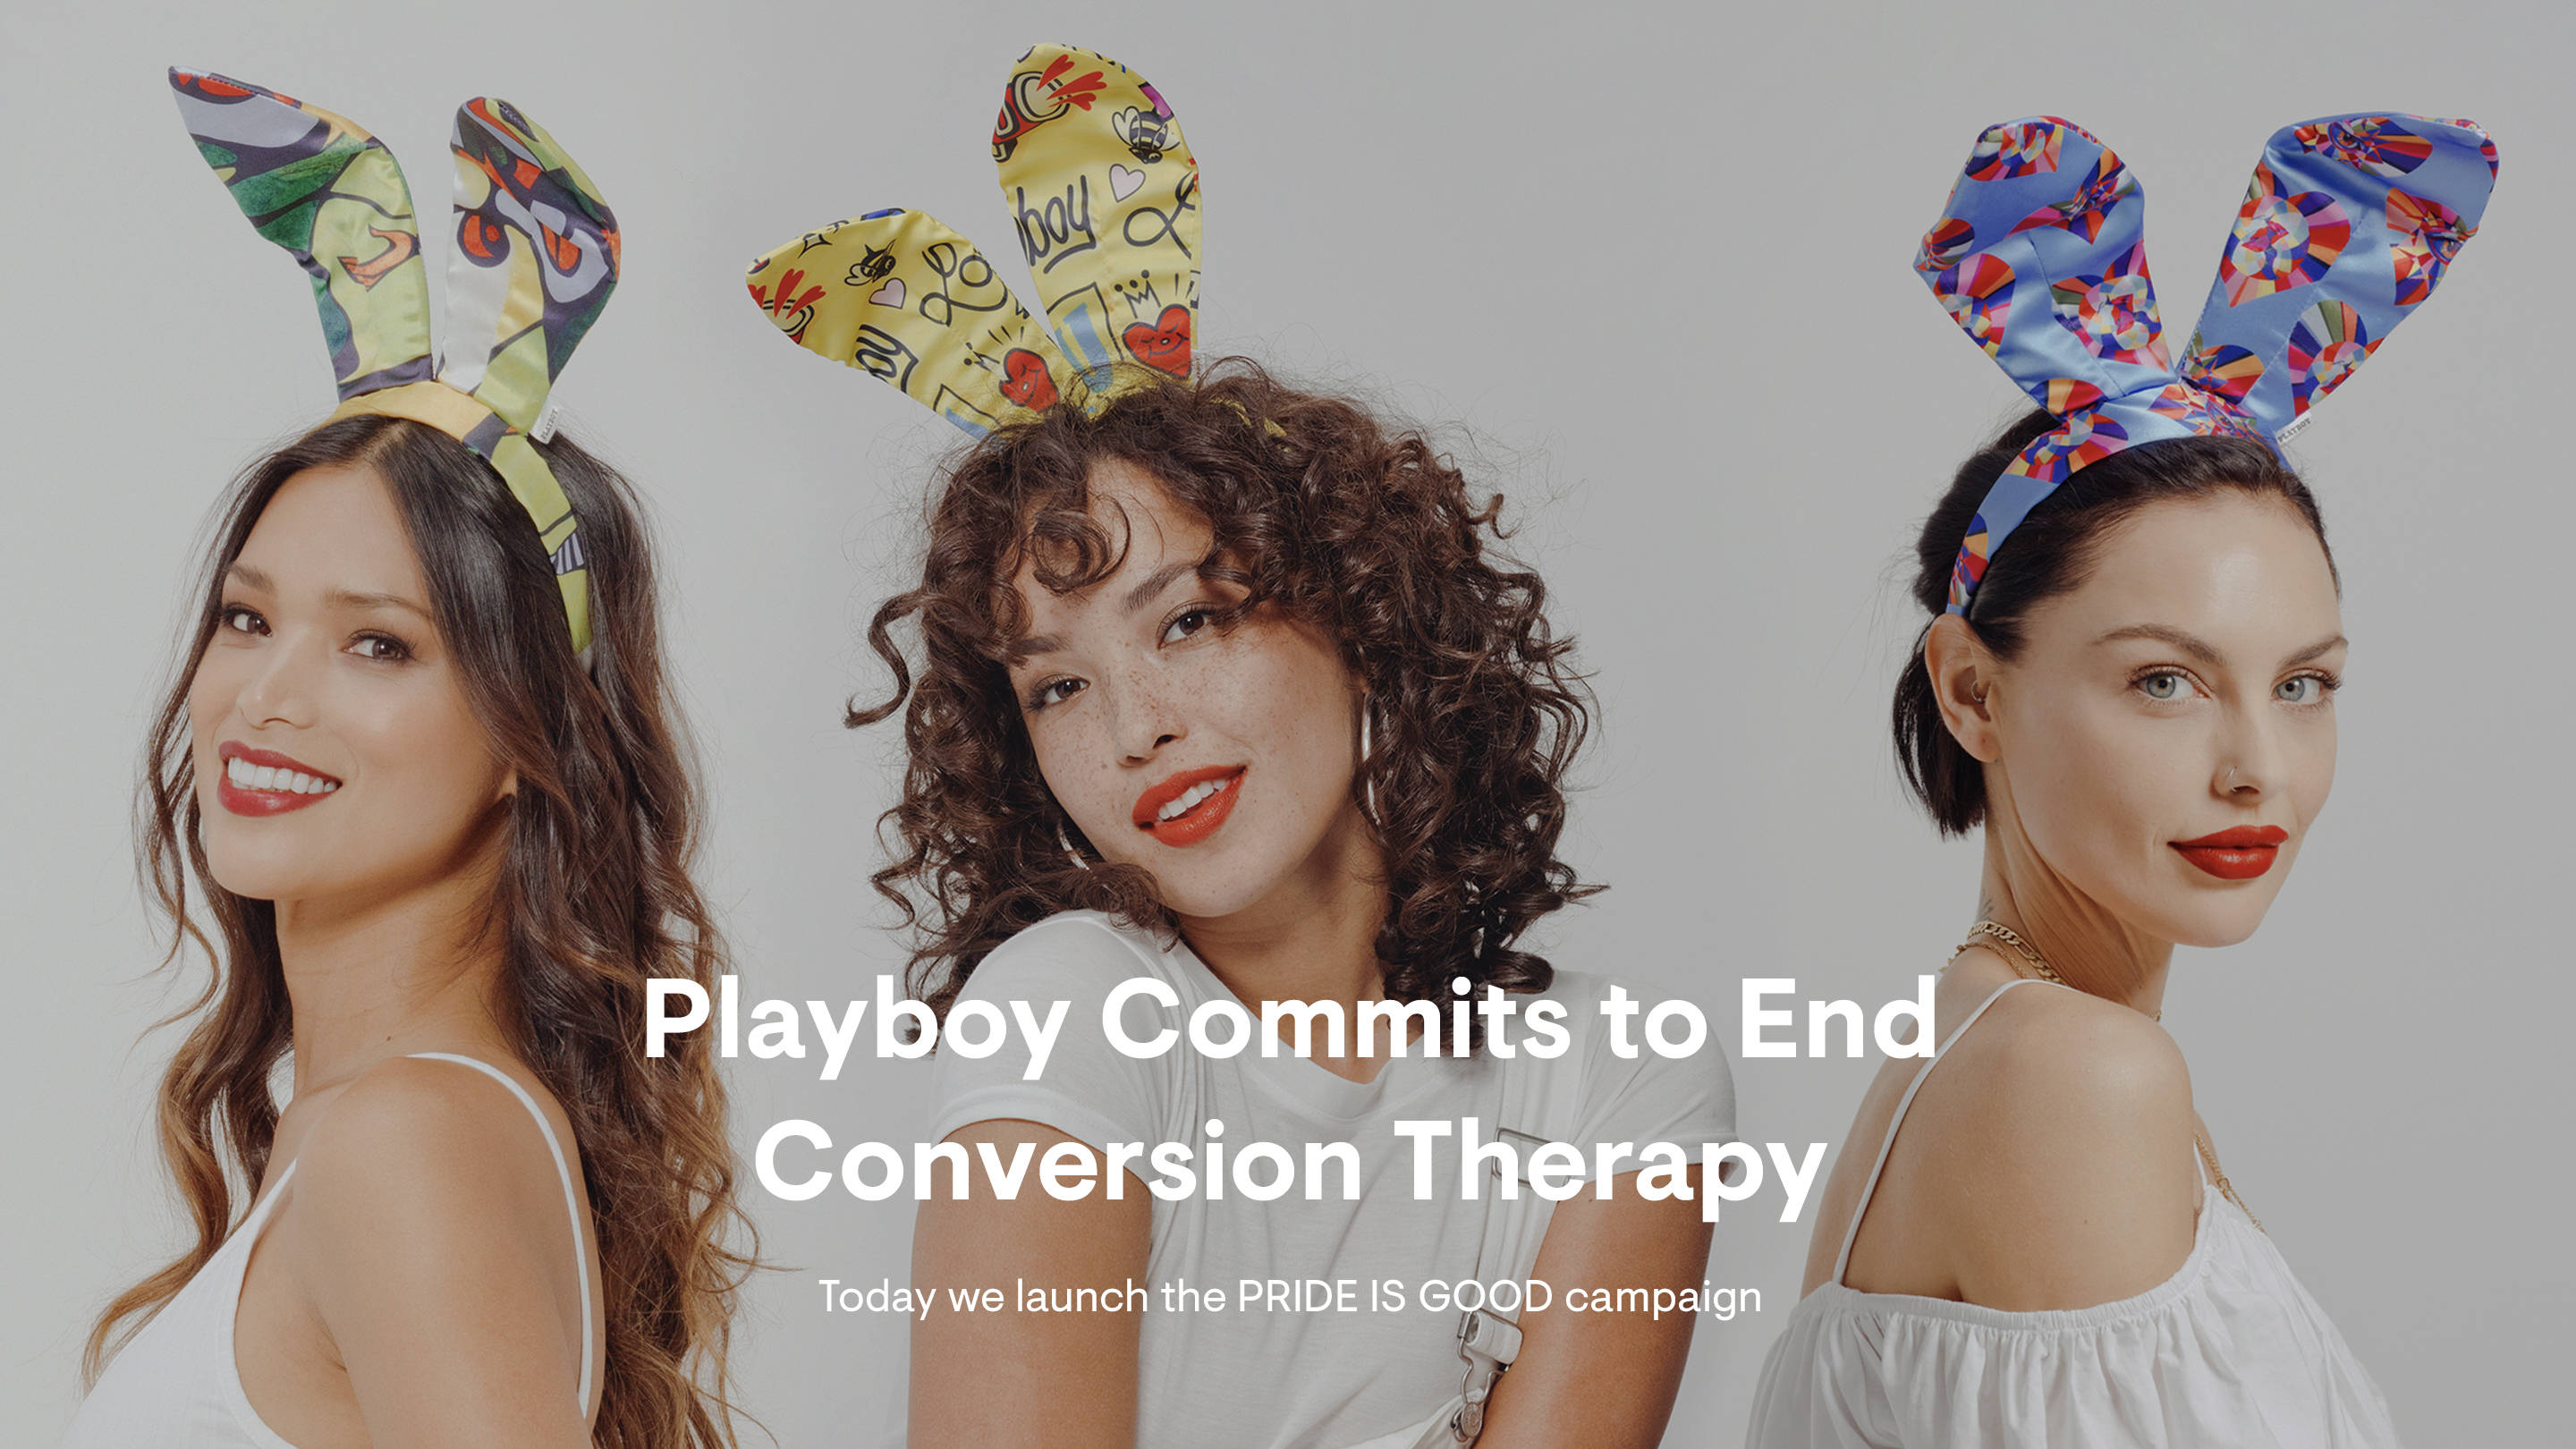 Playboy launches PRIDE IS GOOD campaign